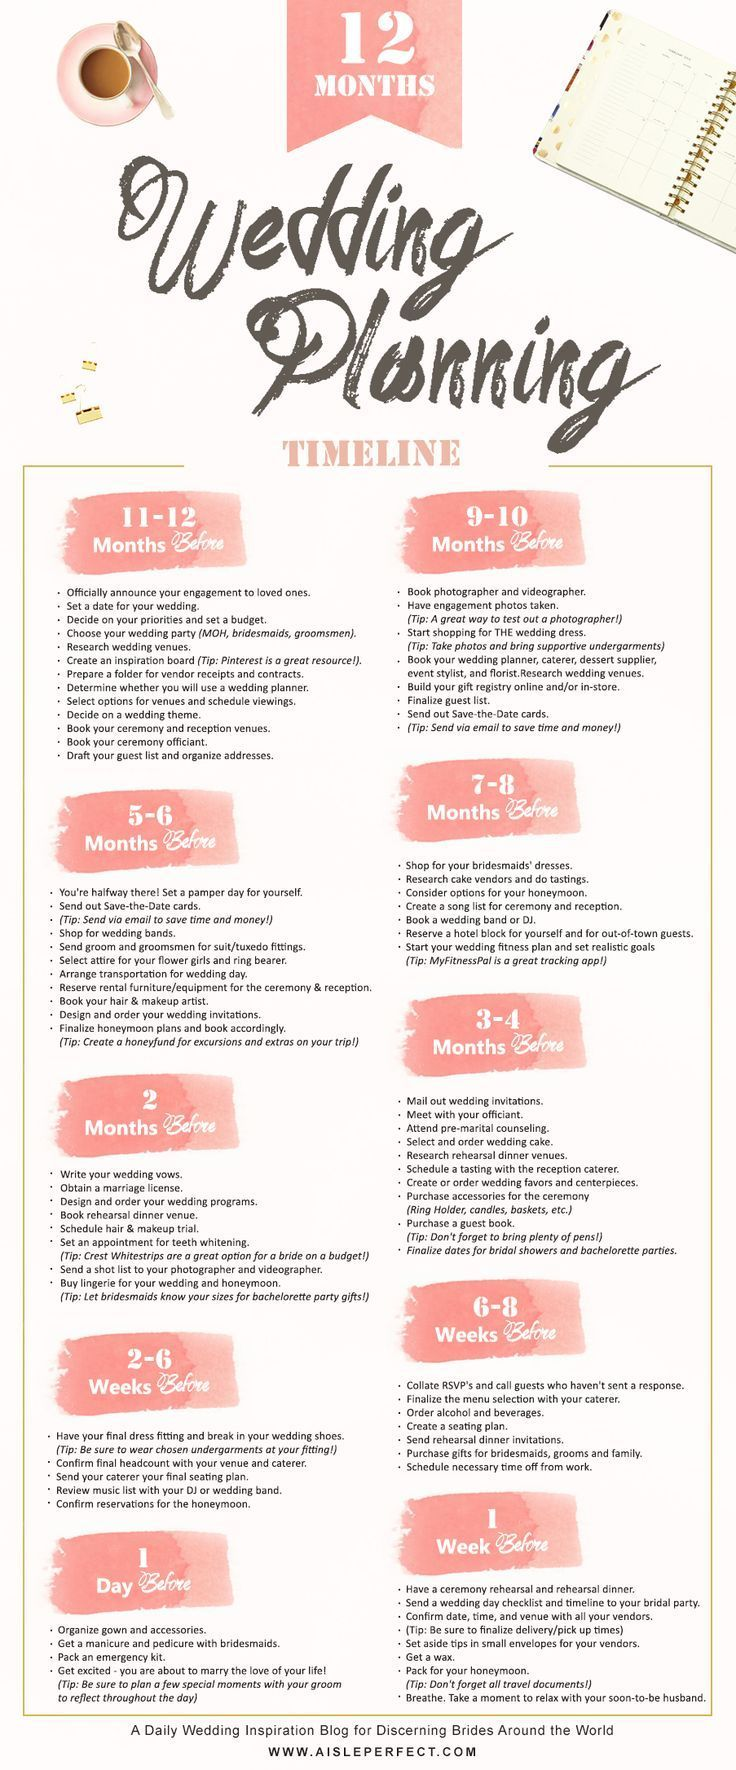 This Handy 12 Month Wedding Planning Timeline To Guide You Through